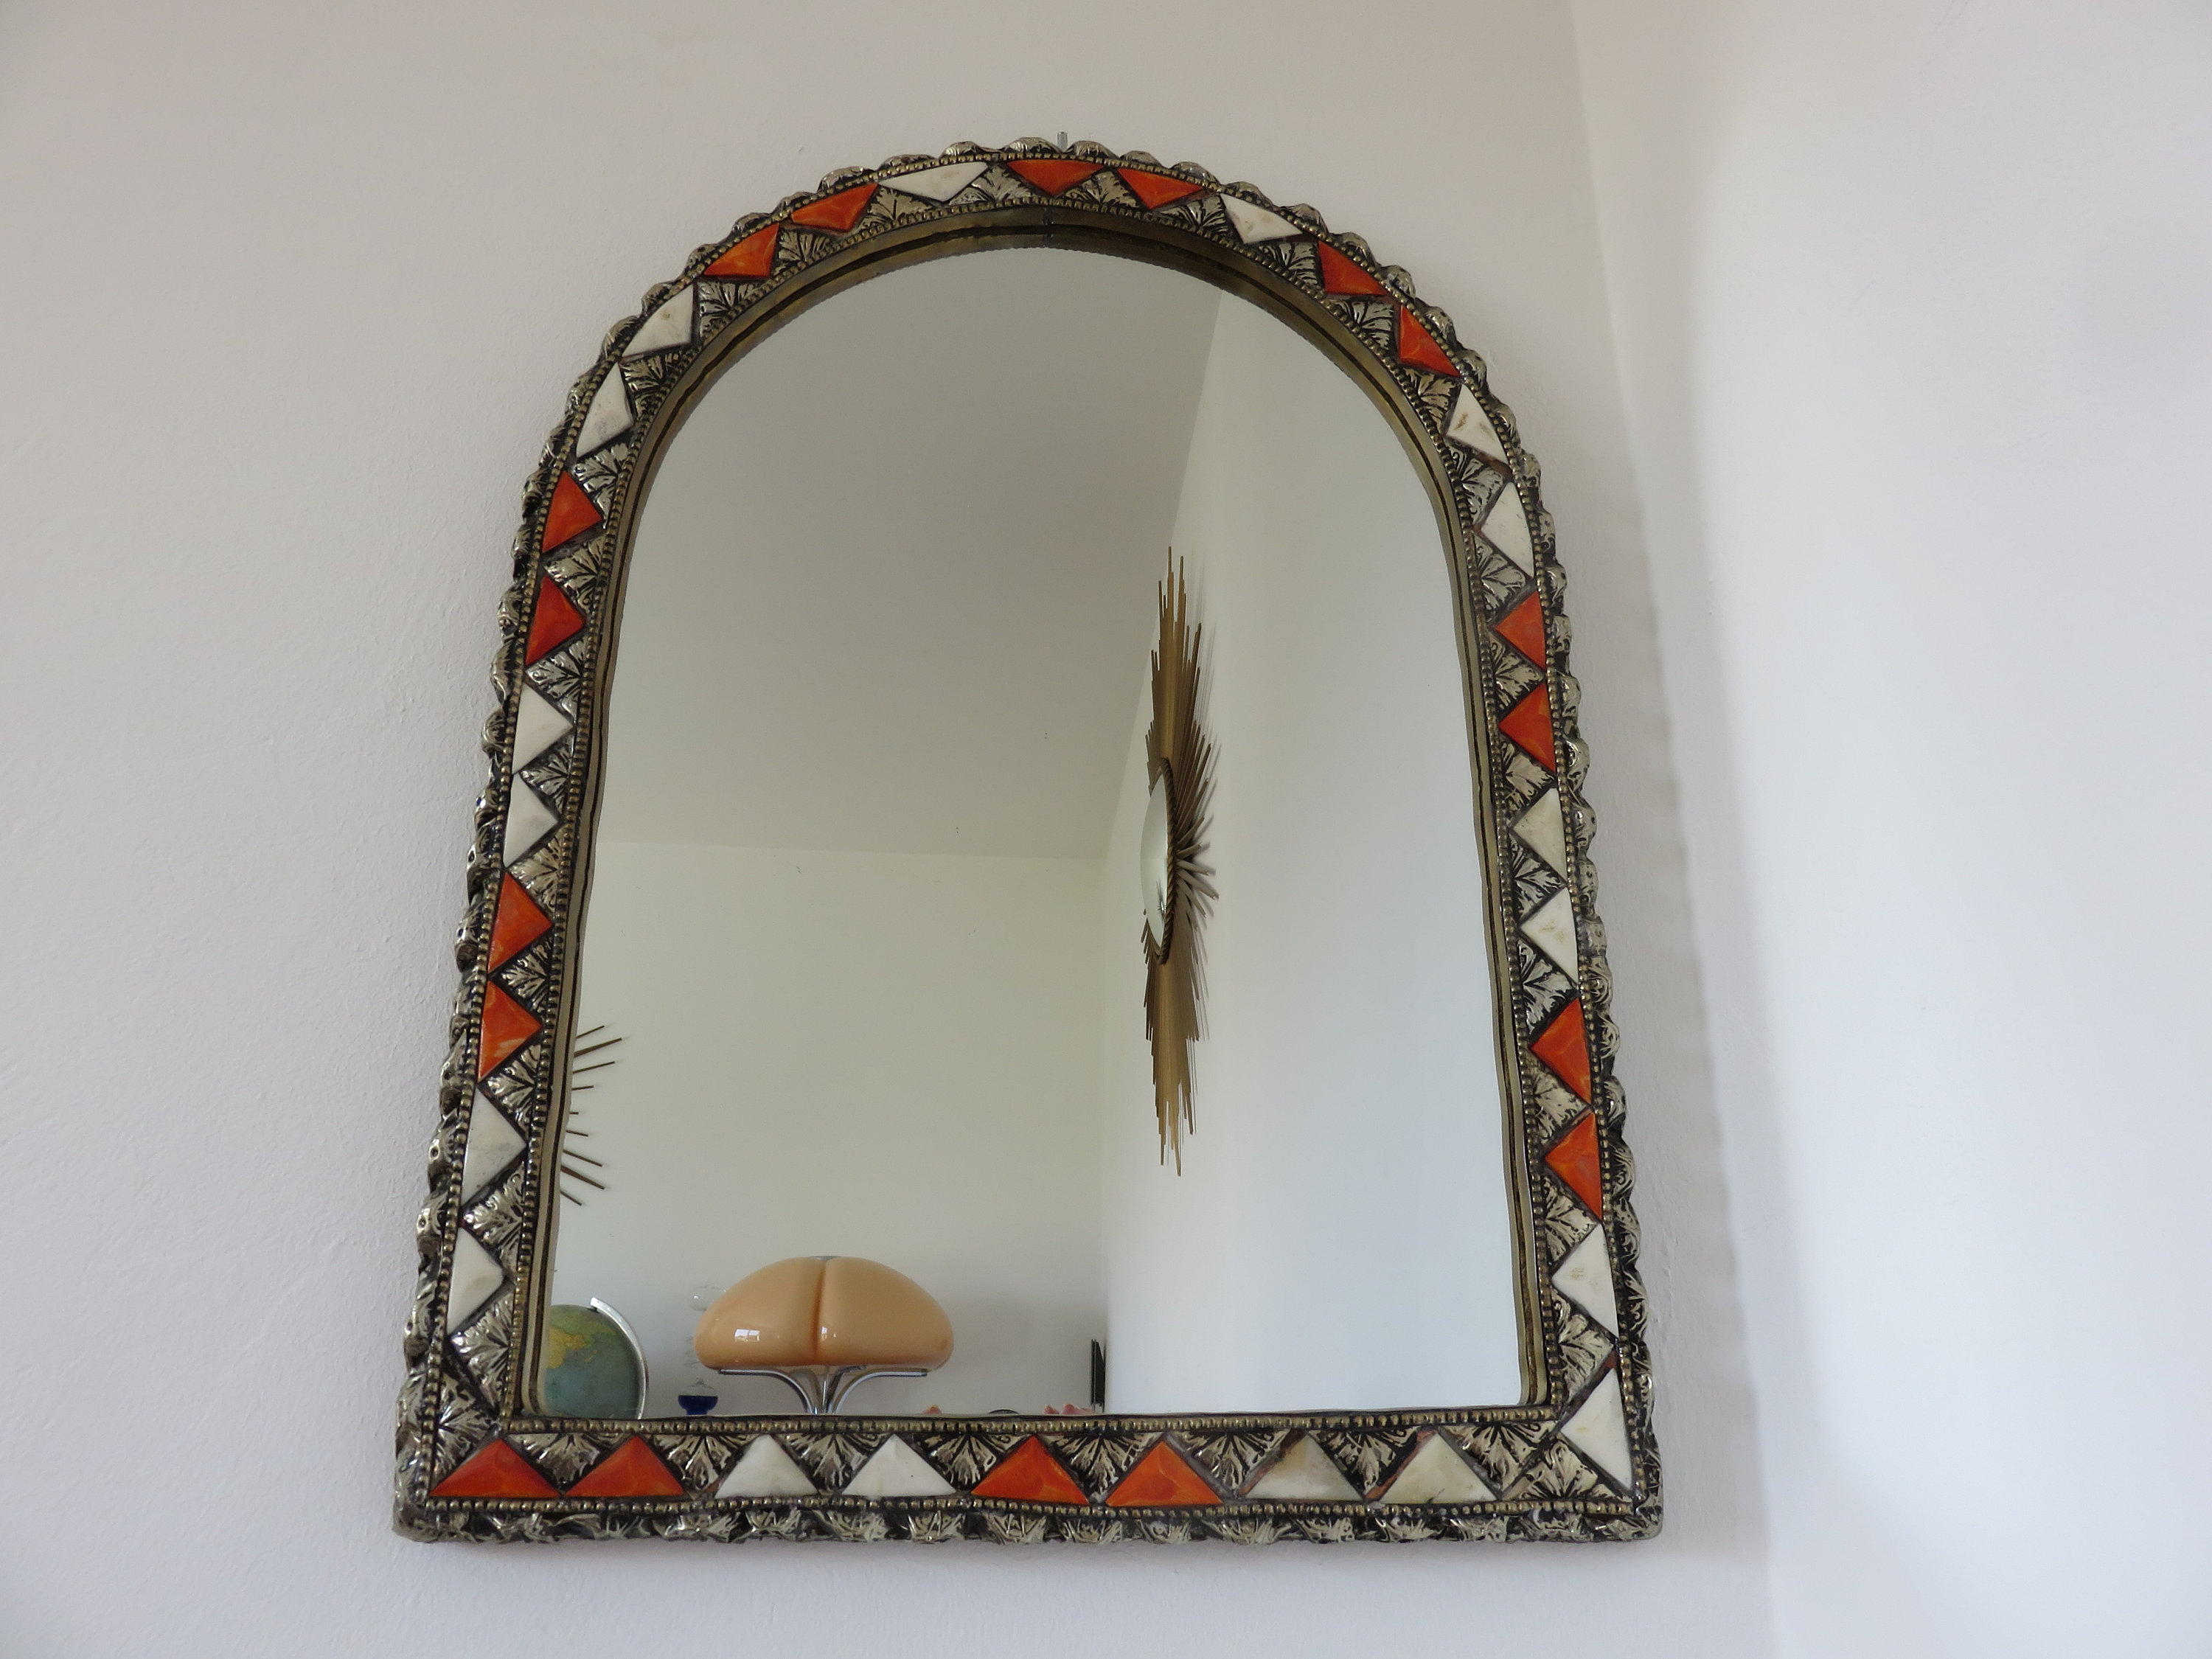 Ethnic Moroccan Oriental Wall Mirror With Mid Century Inlays 1960 1970 60's  70's Vintage Old Mirror Mirror Moroccan Oriental Intended For Popular Ethnic Wall Mirrors (View 4 of 20)